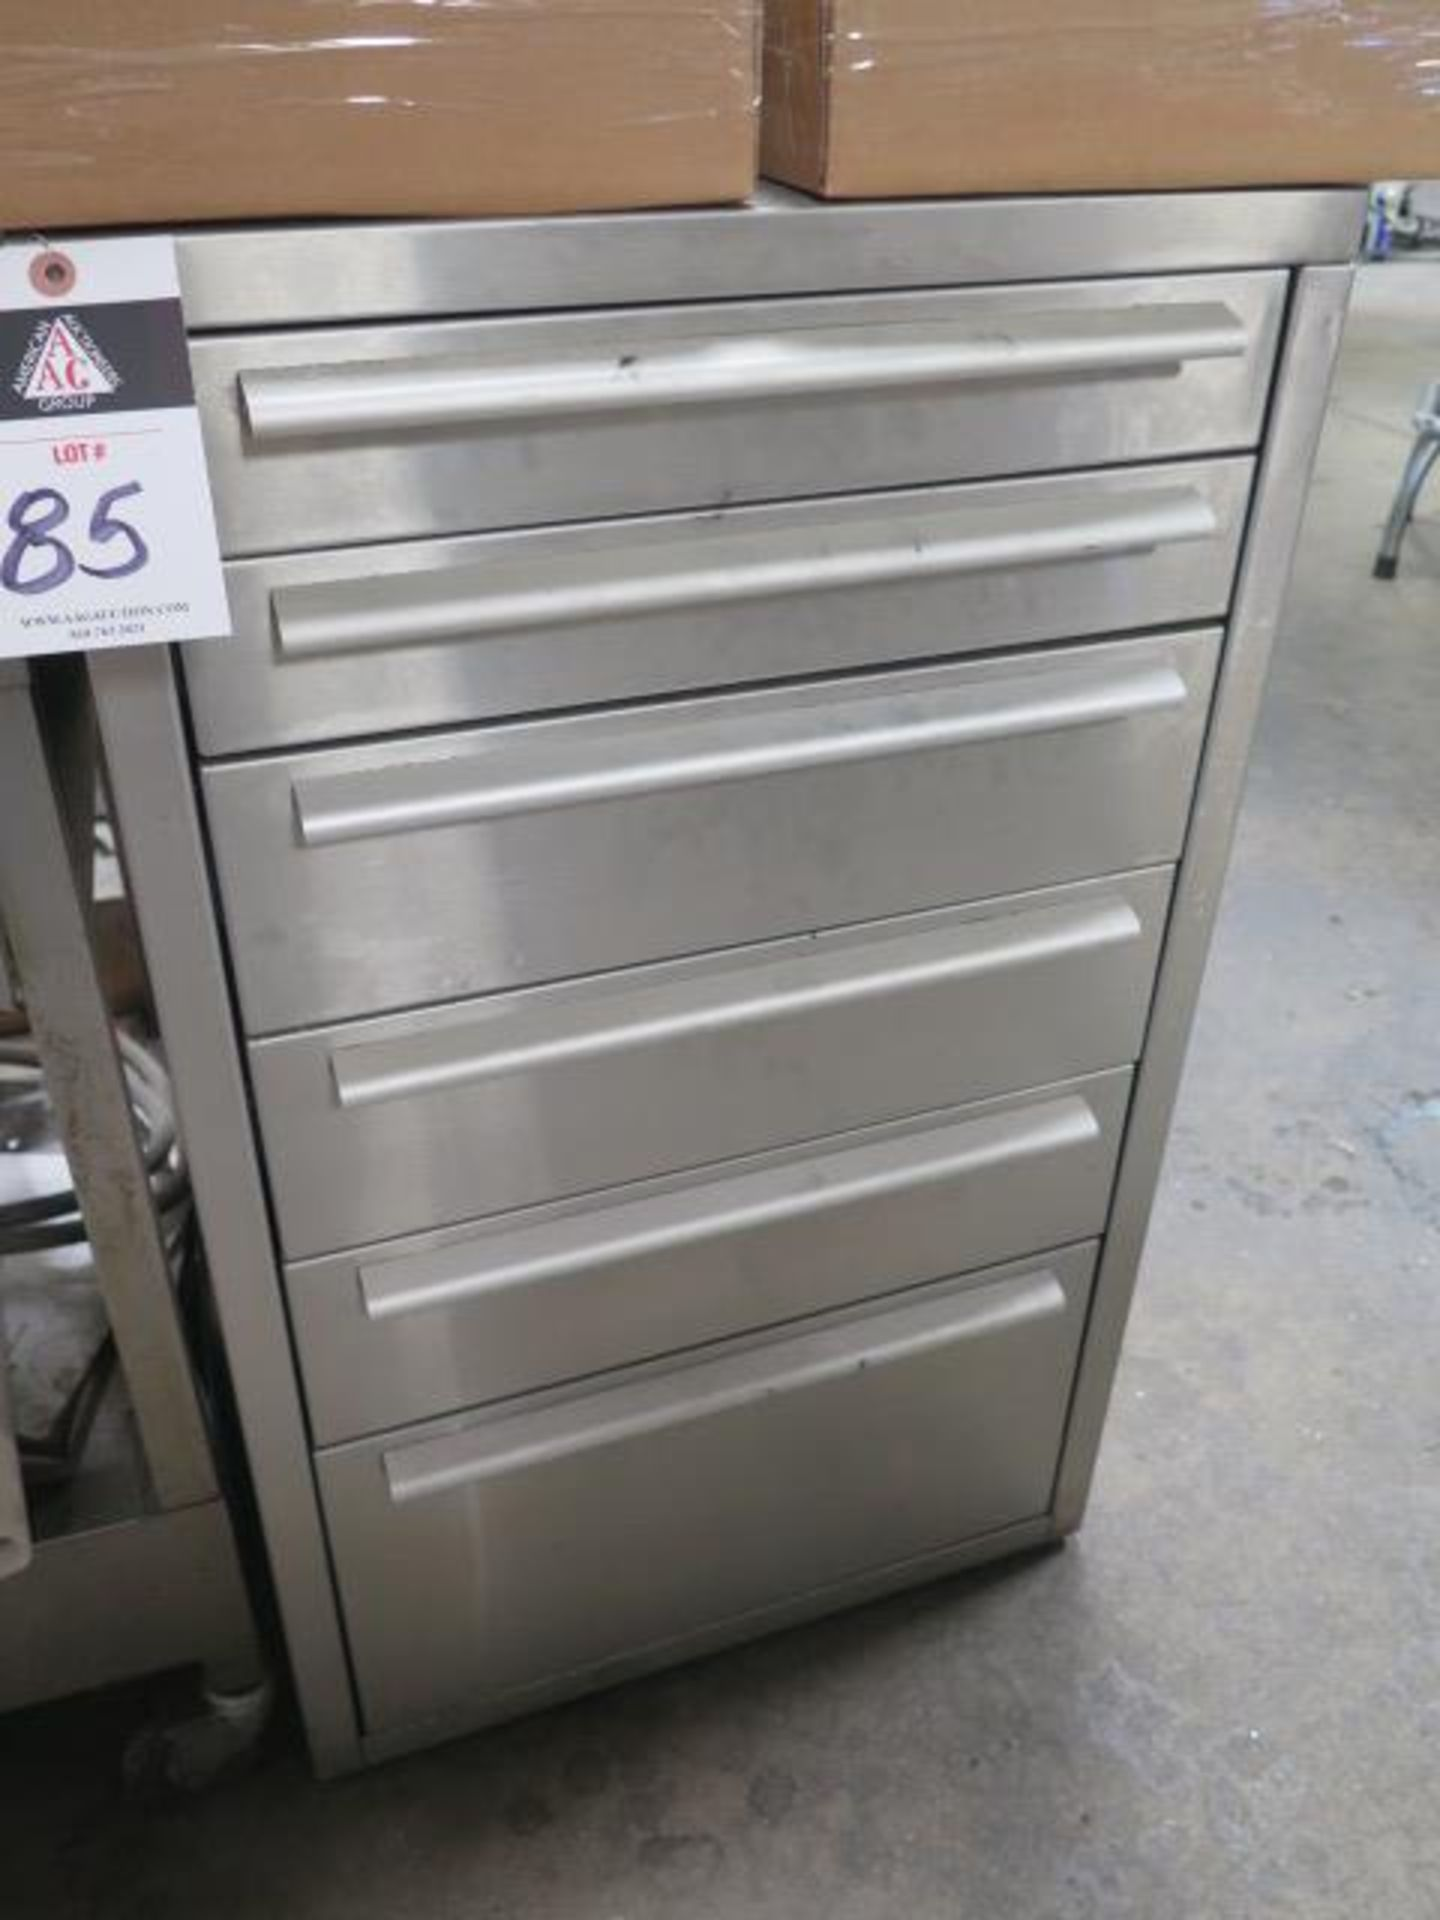 6-Drawer Tooling Cabinet w/ Chuck Jaws (SOLD AS-IS - NO WARRANTY)